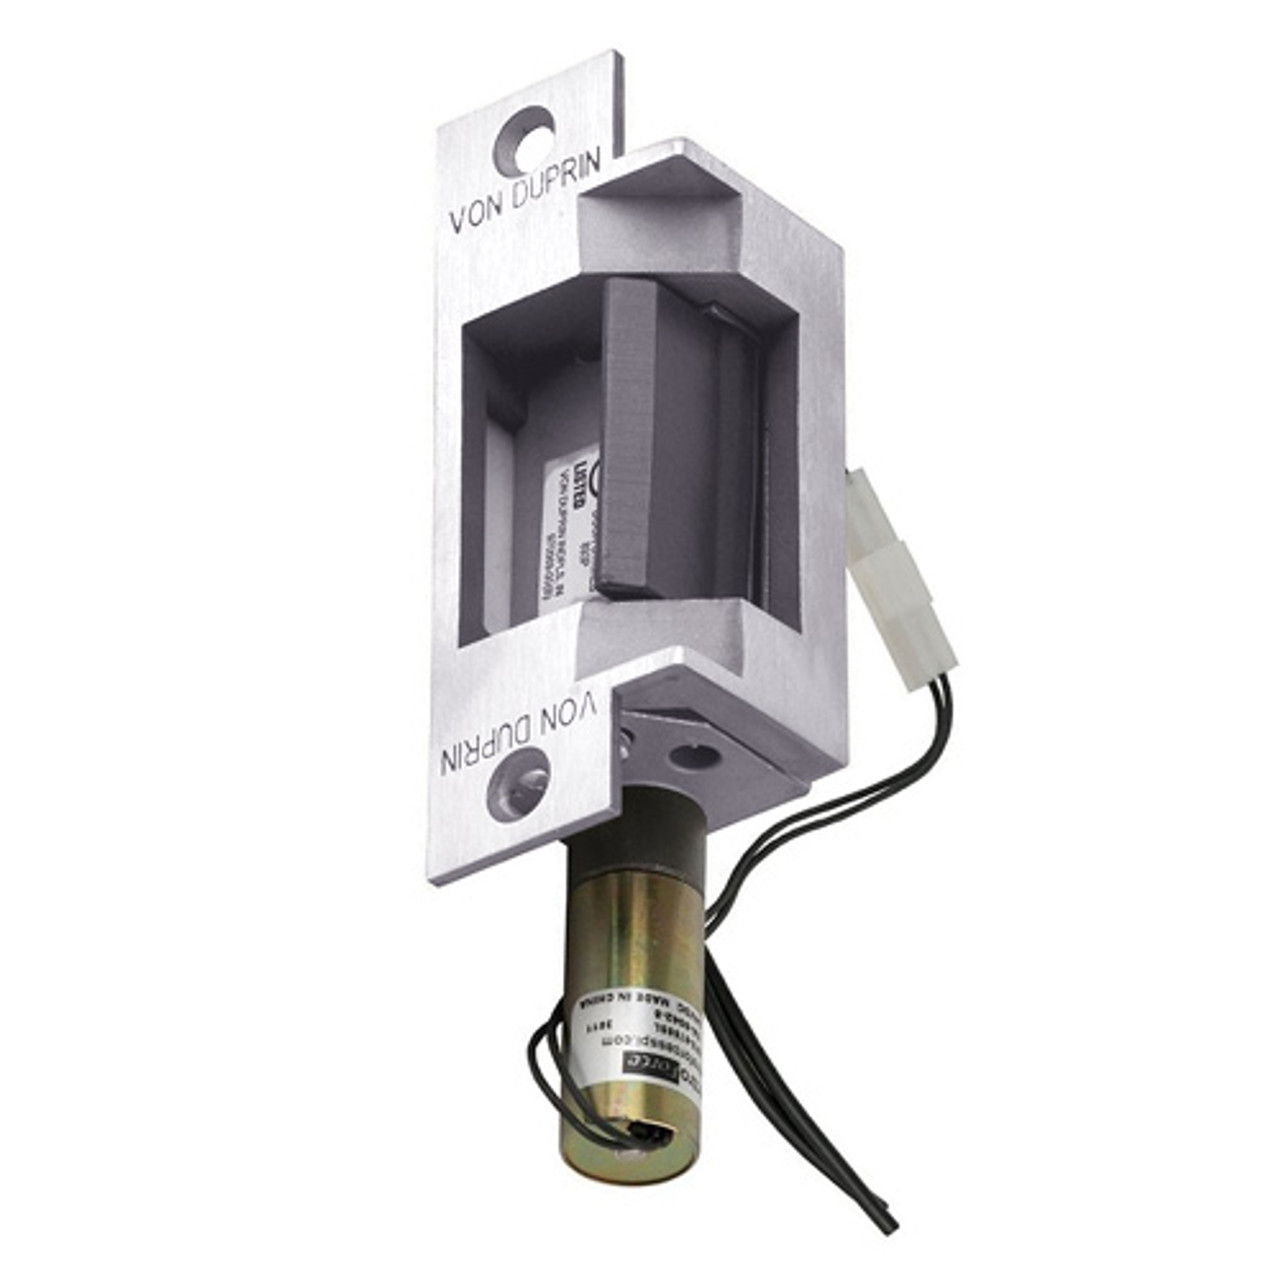 6211-DS-24VDC-US32 Von Duprin Electric Strike in Bright Stainless Steel Finish